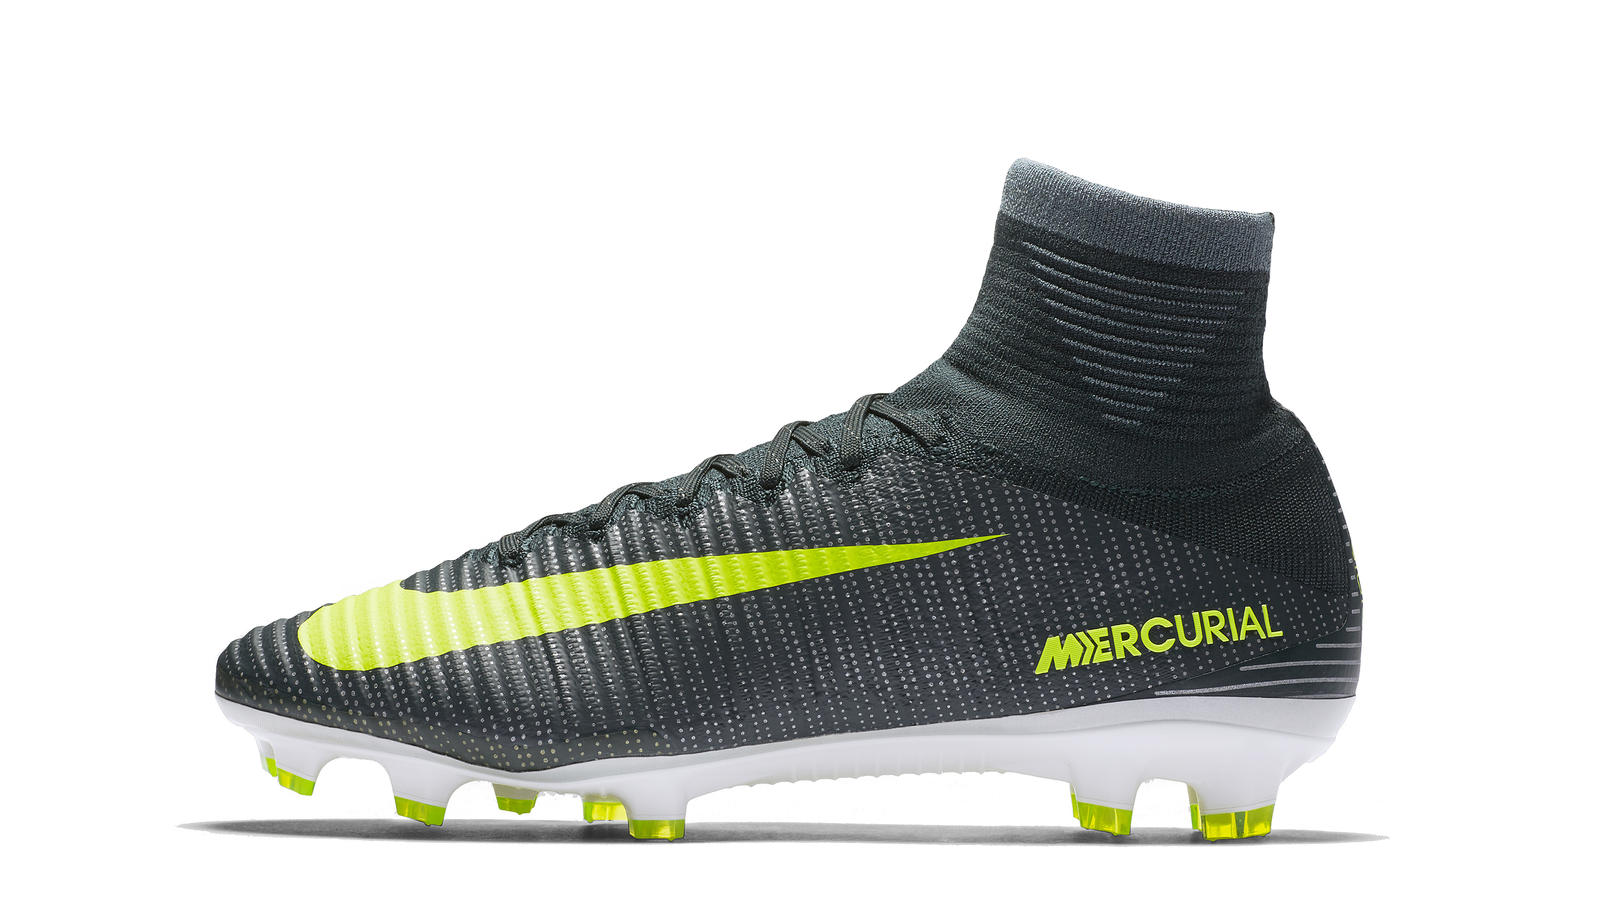 2016 CR7 Chapter 3 Mercurial Superfly FG